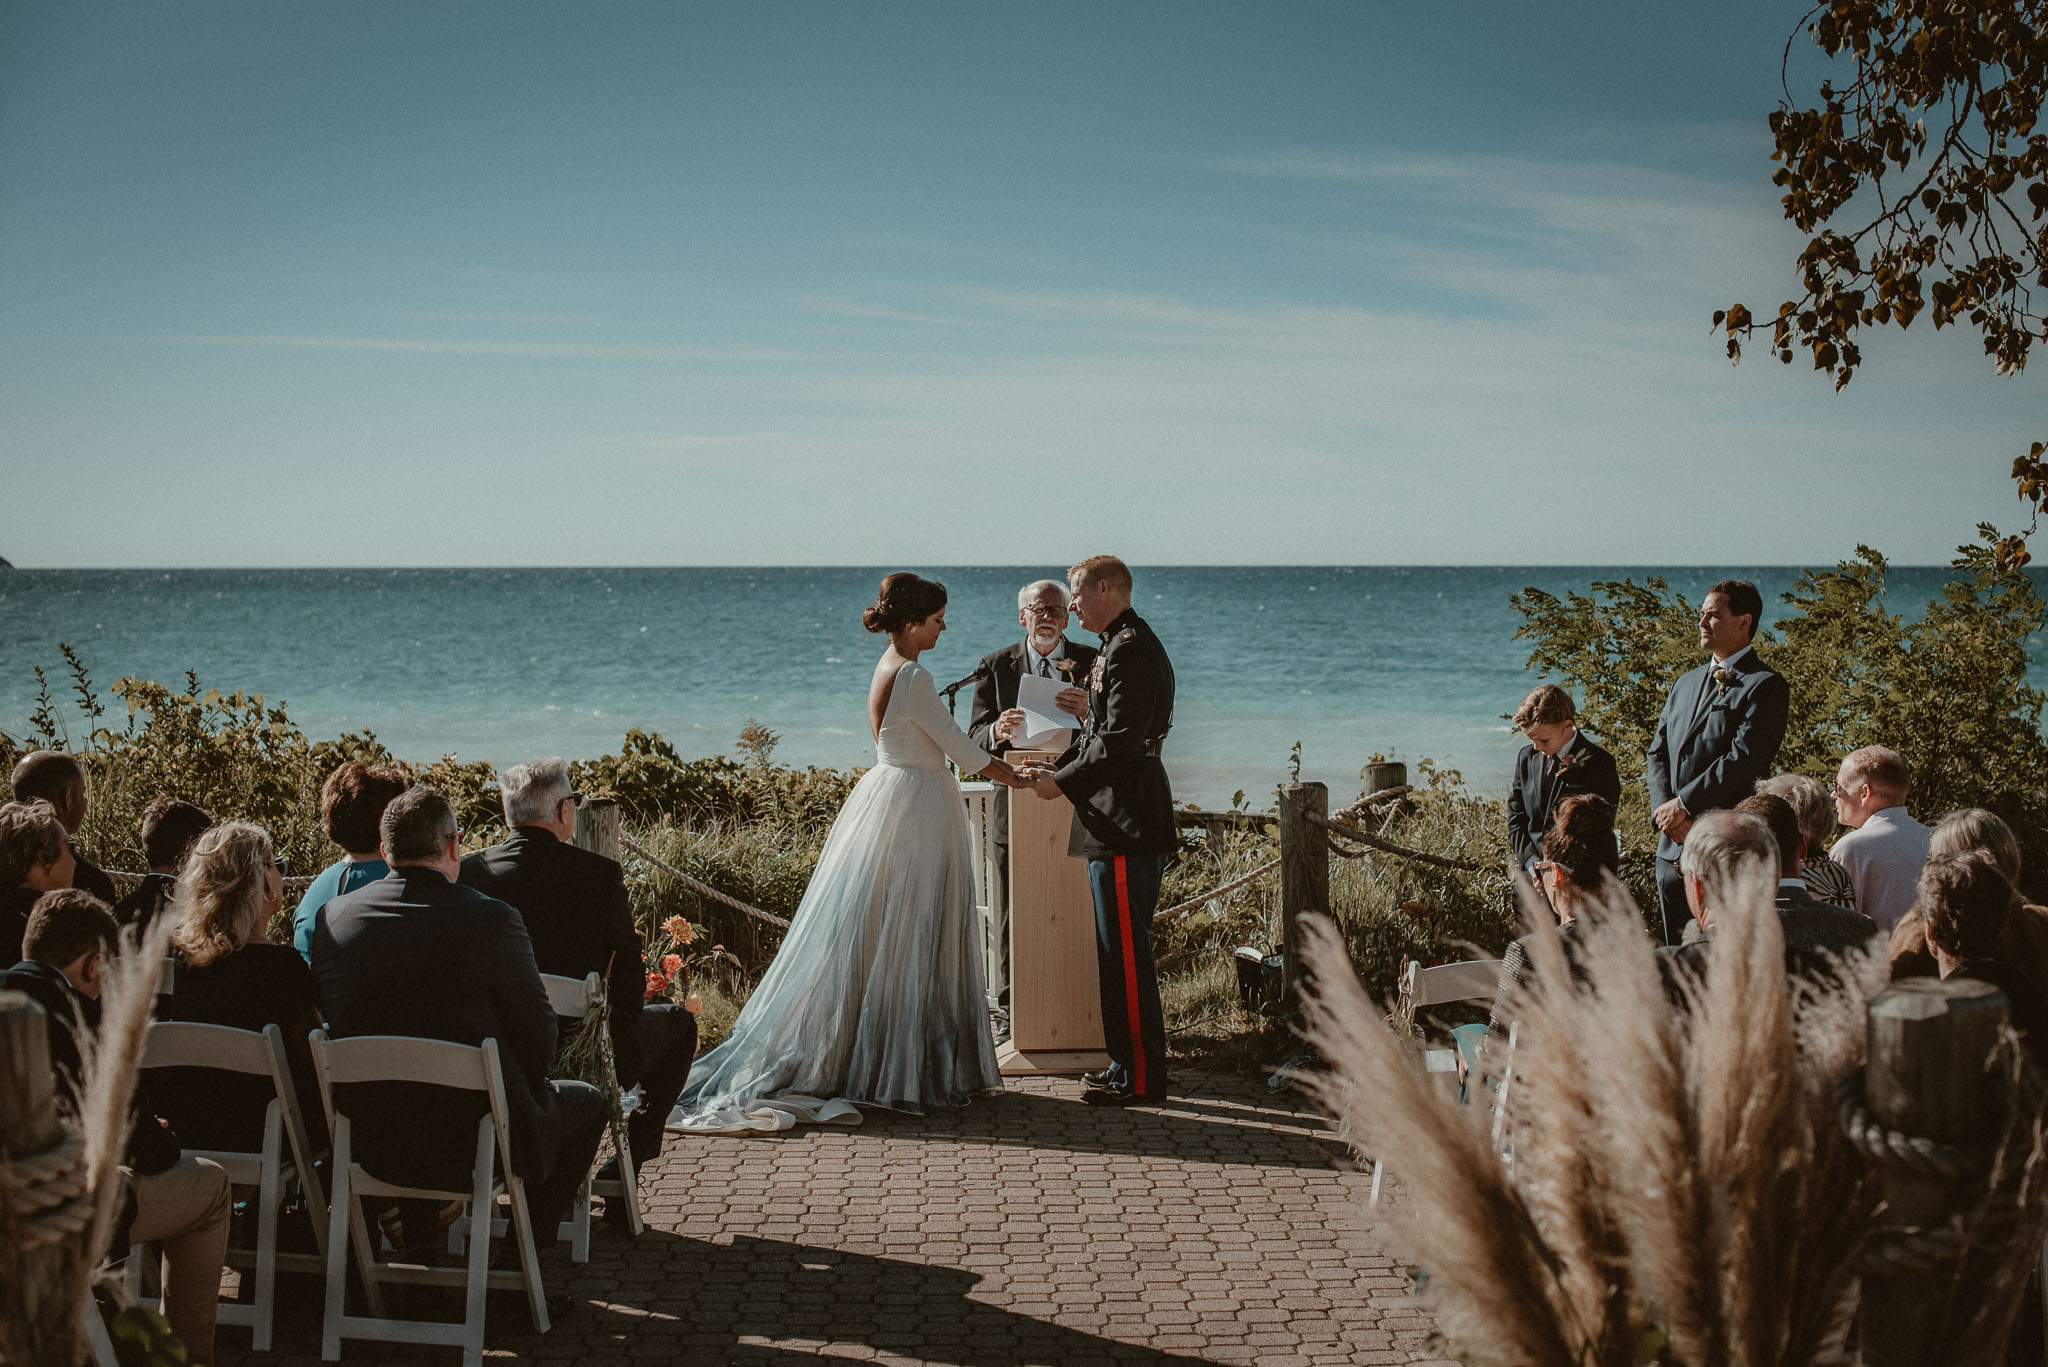 The bride and groom at the alter holding hands during the ceremony with Lake Michigan as a backdrop.